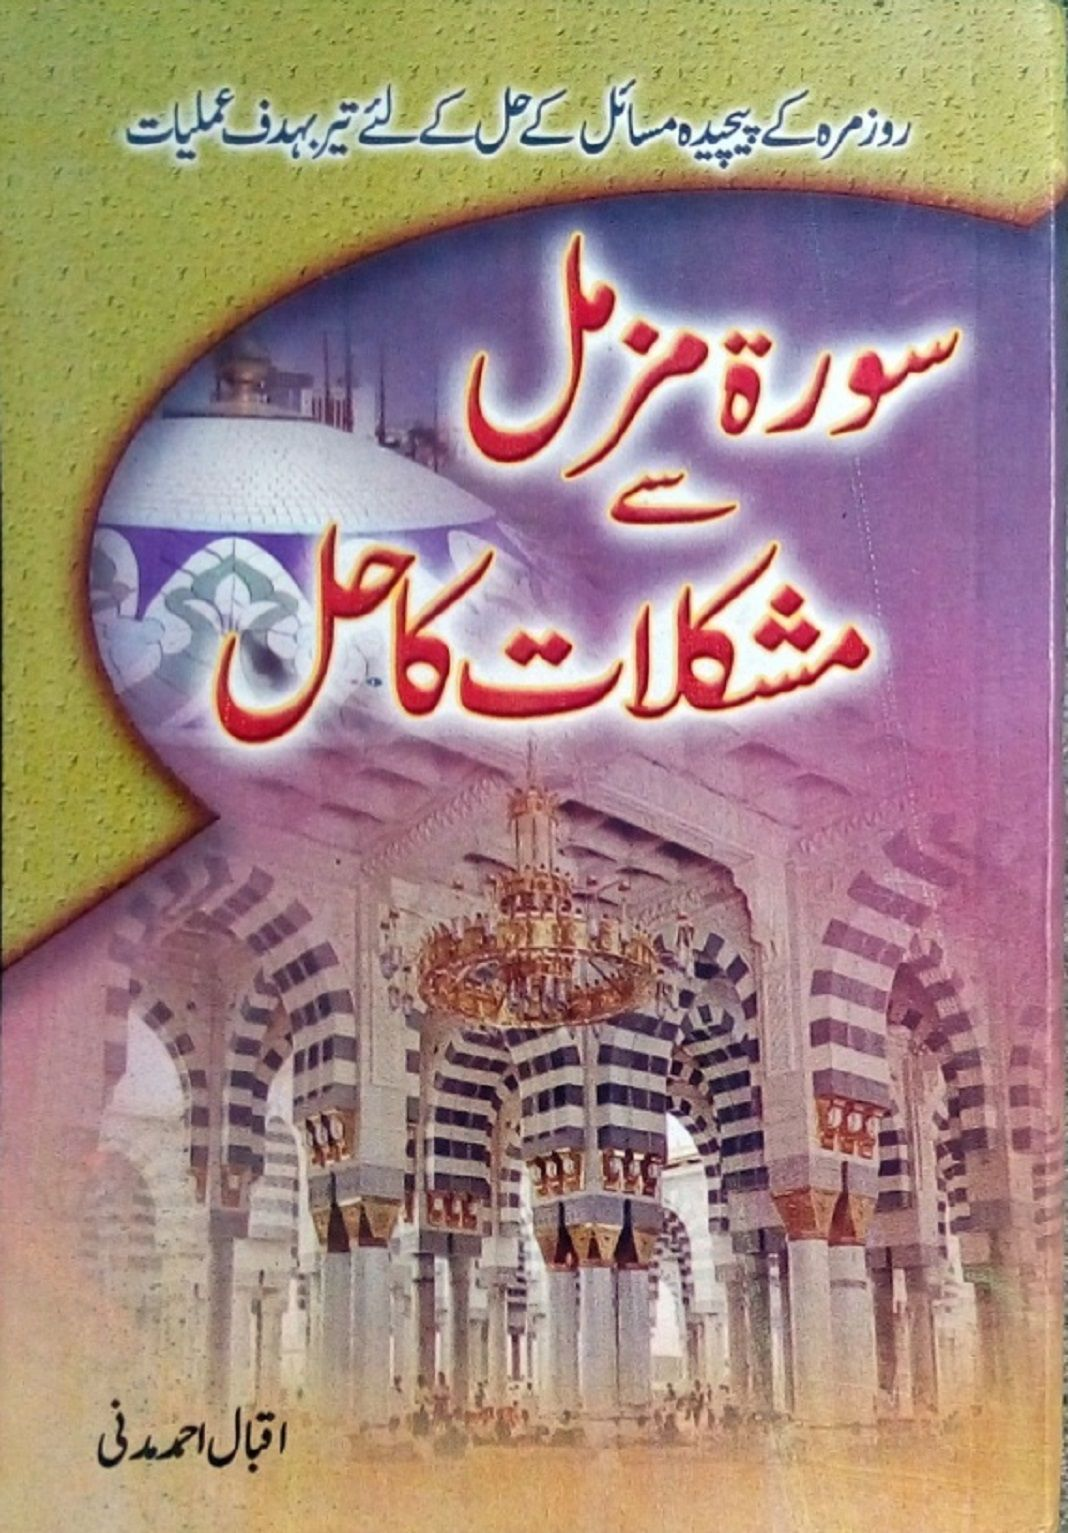 Urdu Books And Islamic Books Free Download: Tohfa Shadi Book In Urdu With  Health Problem Solutions  Saeed G  Pinterest